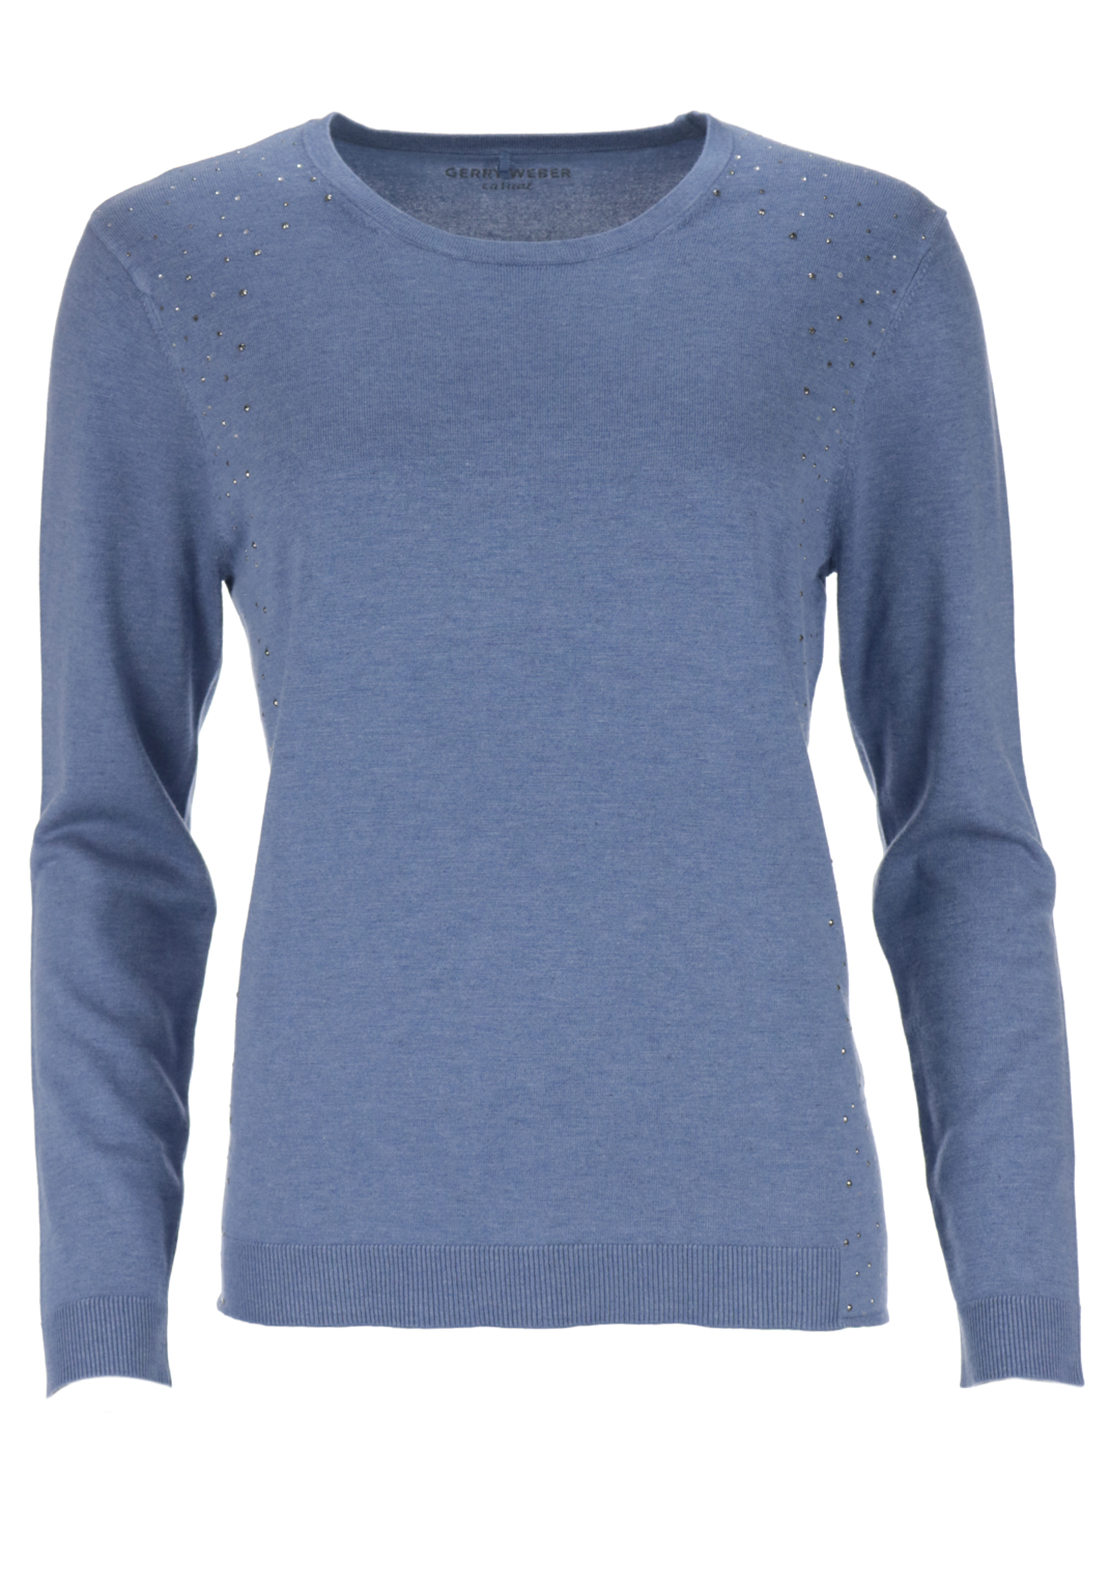 Gerry Weber Knitwear Jumper Studded Detail, Blue